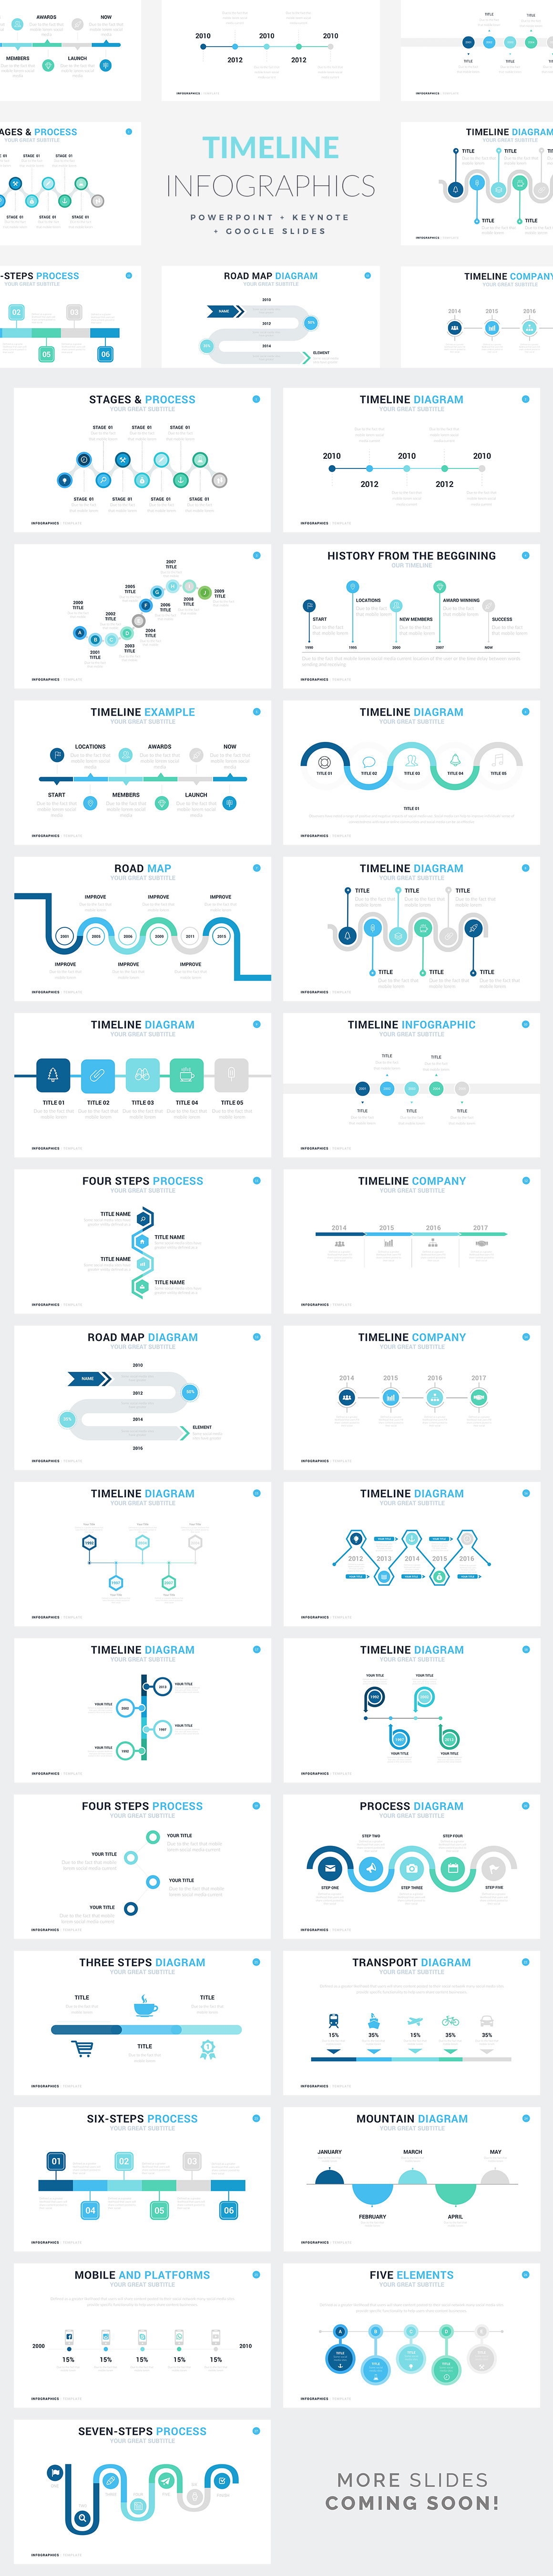 Infographic Templates - PowerPoint Templates - Keynote Themes - Google Slides